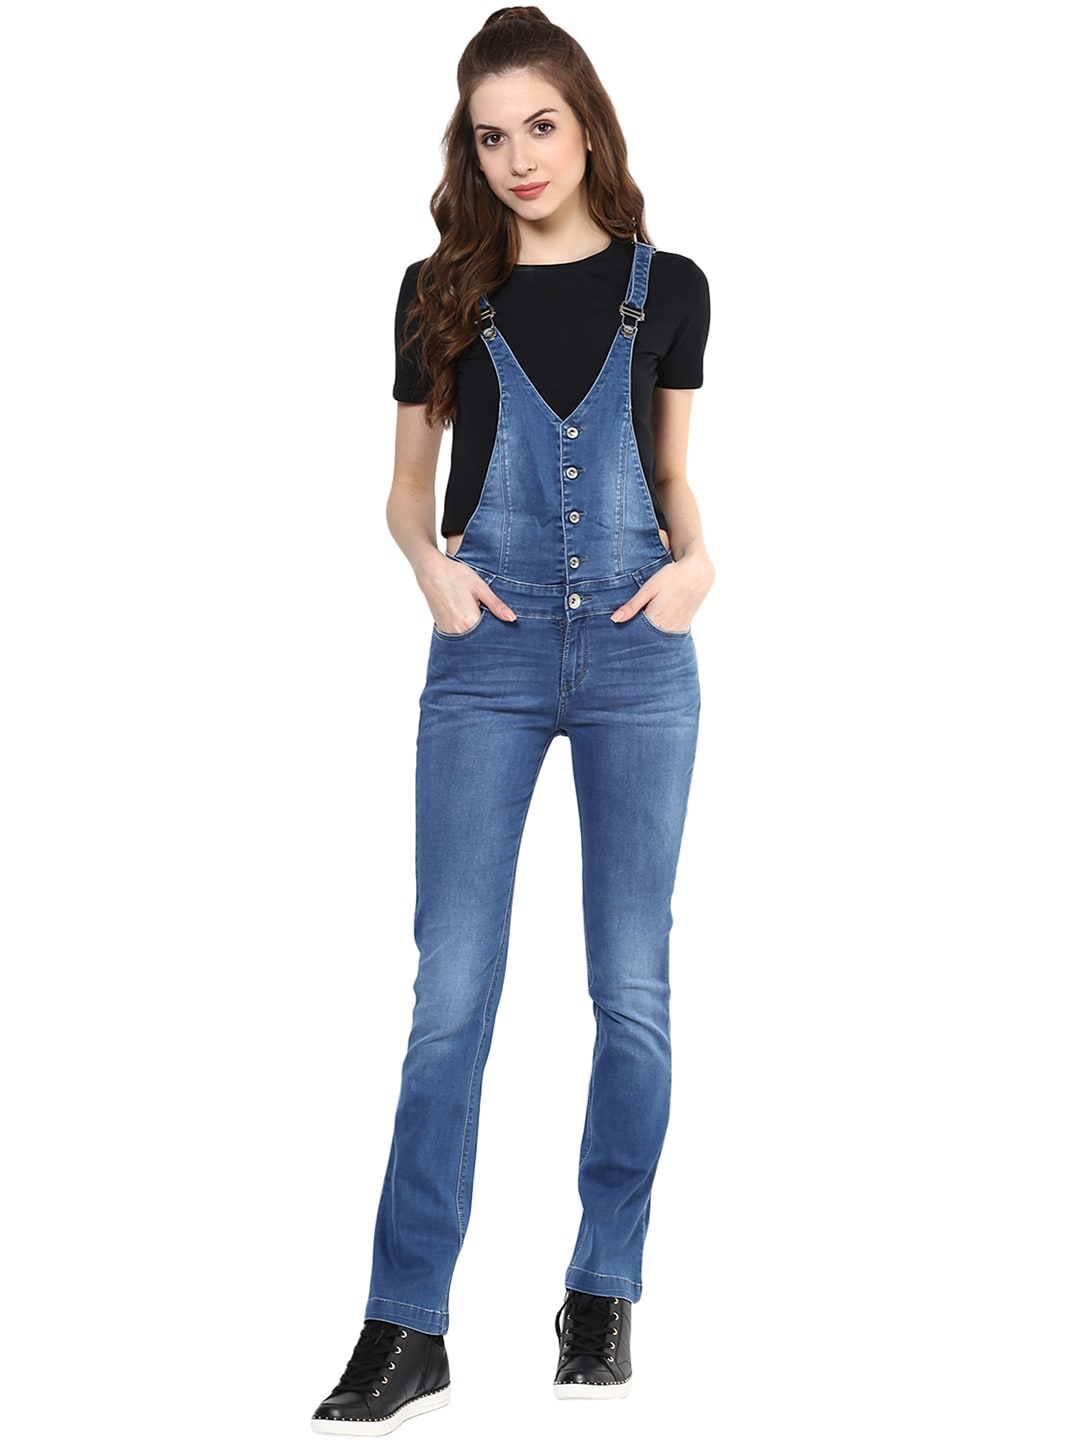 fdedb1e4b1 Dungarees - Buy Dungarees Dress for Women Online - Myntra